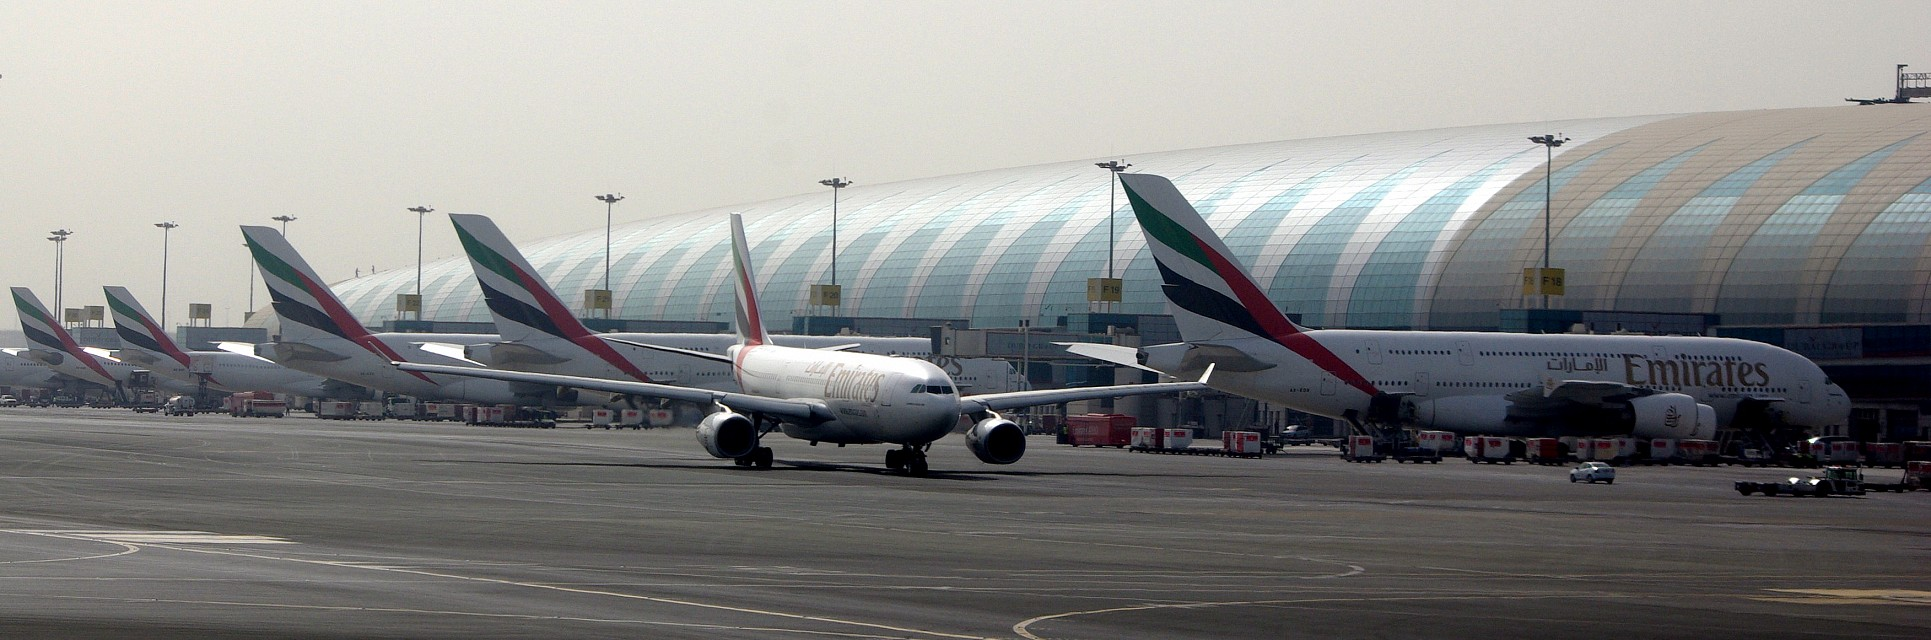 A380s lined up at terminal 3 - Dubai International Airport